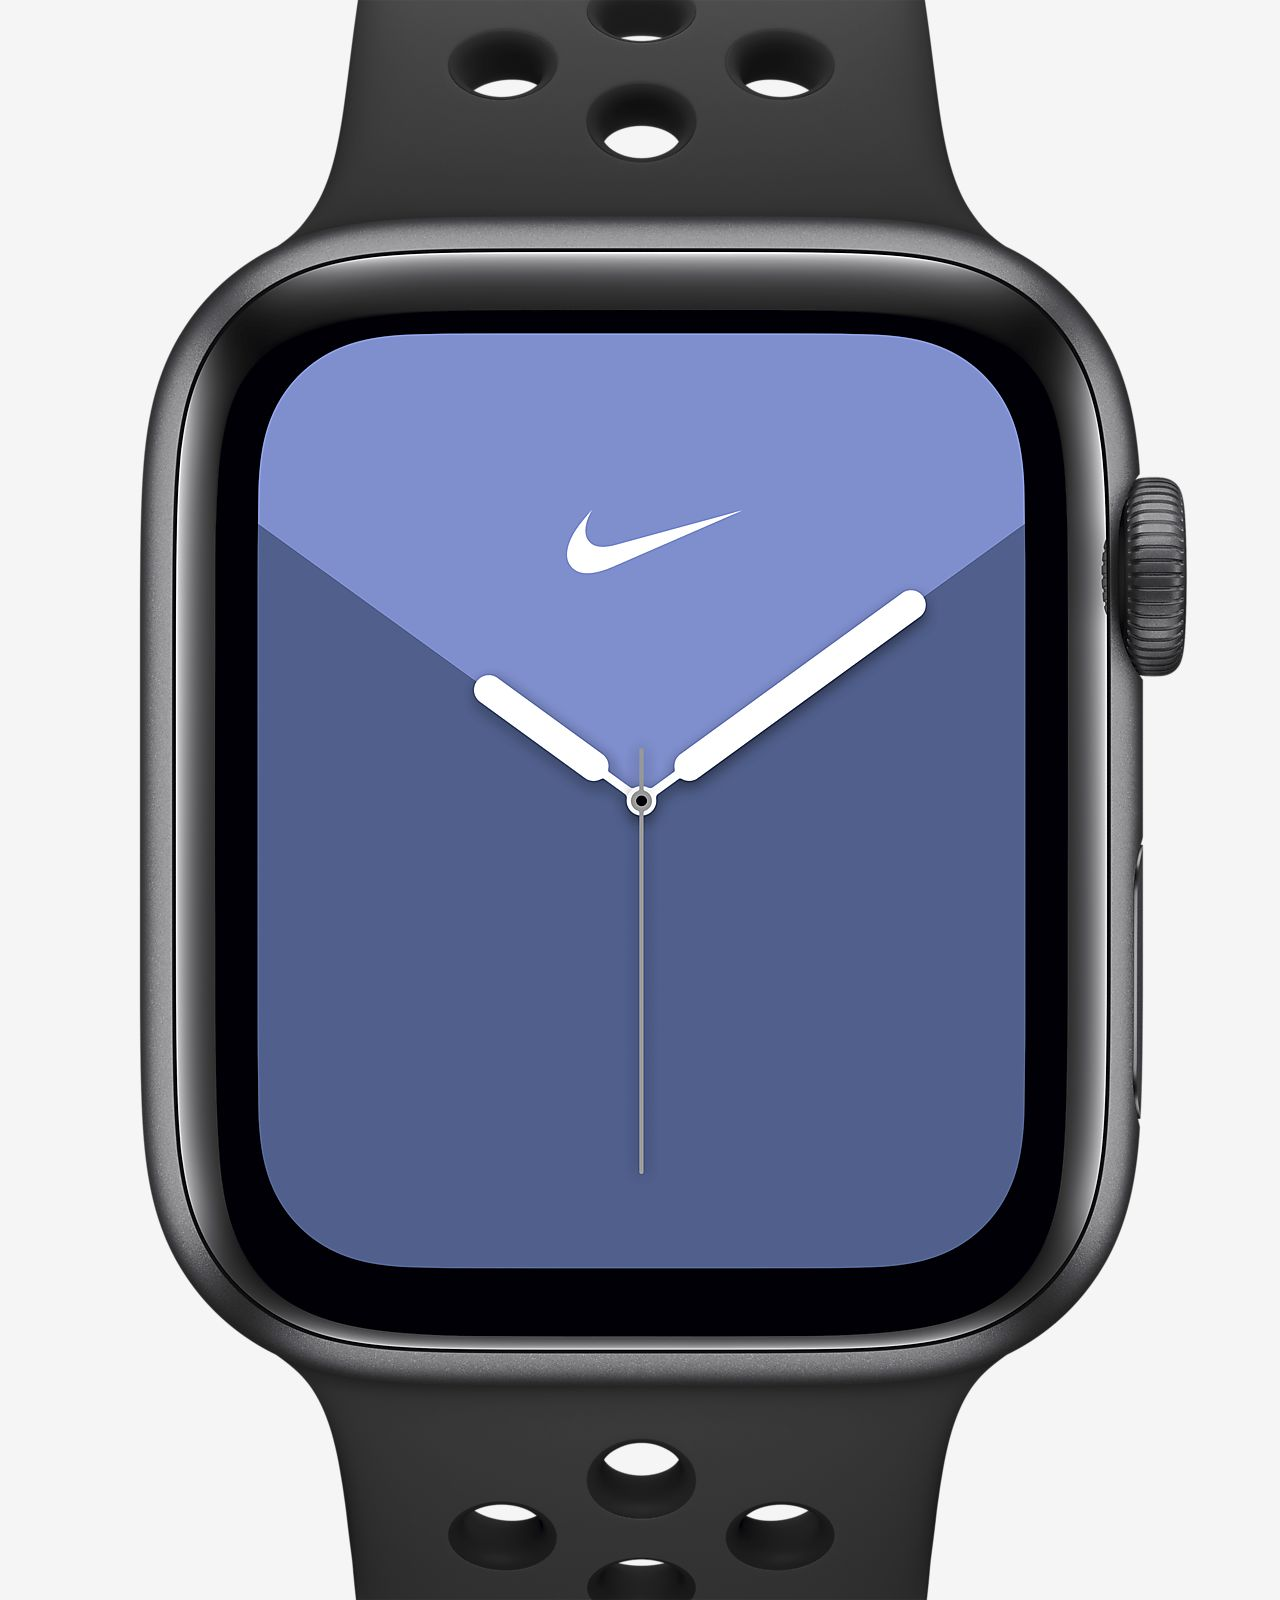 Apple Watch Nike Series 5 (GPS + Cellular) with Nike Sport Band 40mm Space Gray Aluminum Case